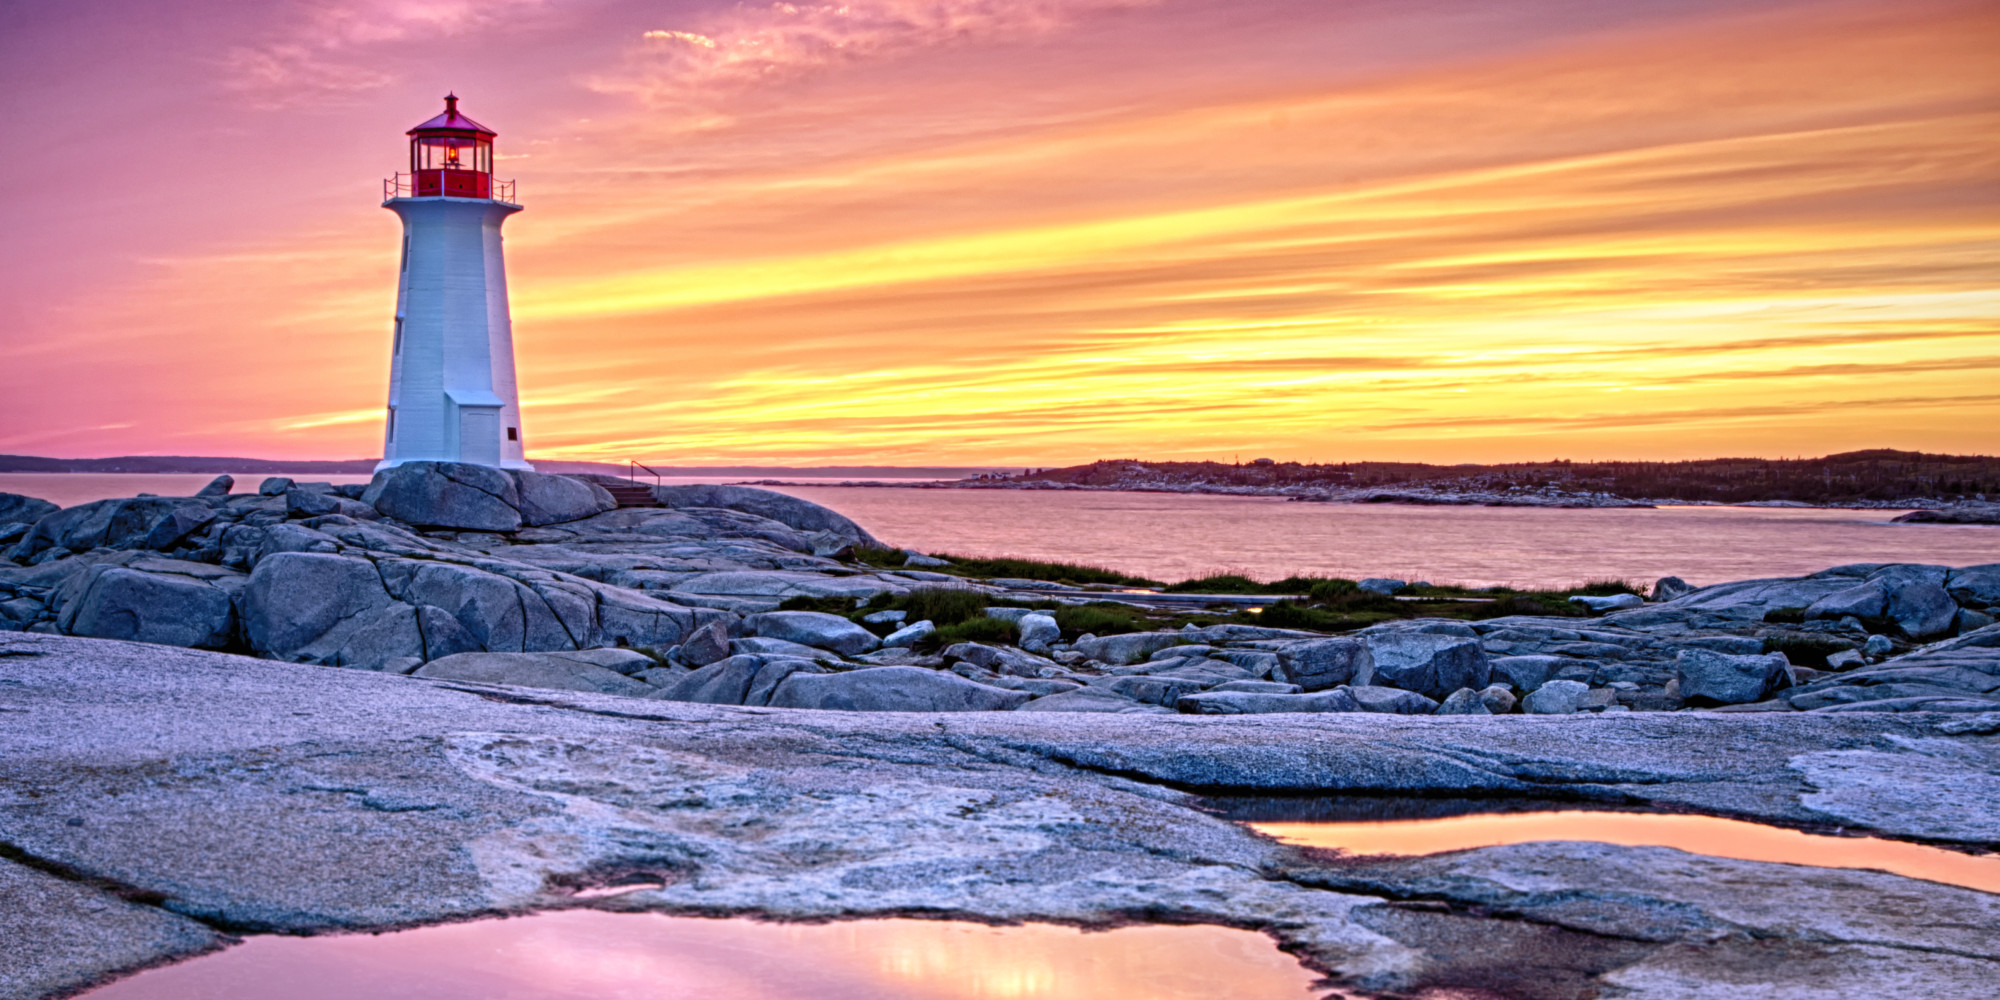 Breathtaking photos of lighthouses in winter huffpost for What state has the most lighthouses